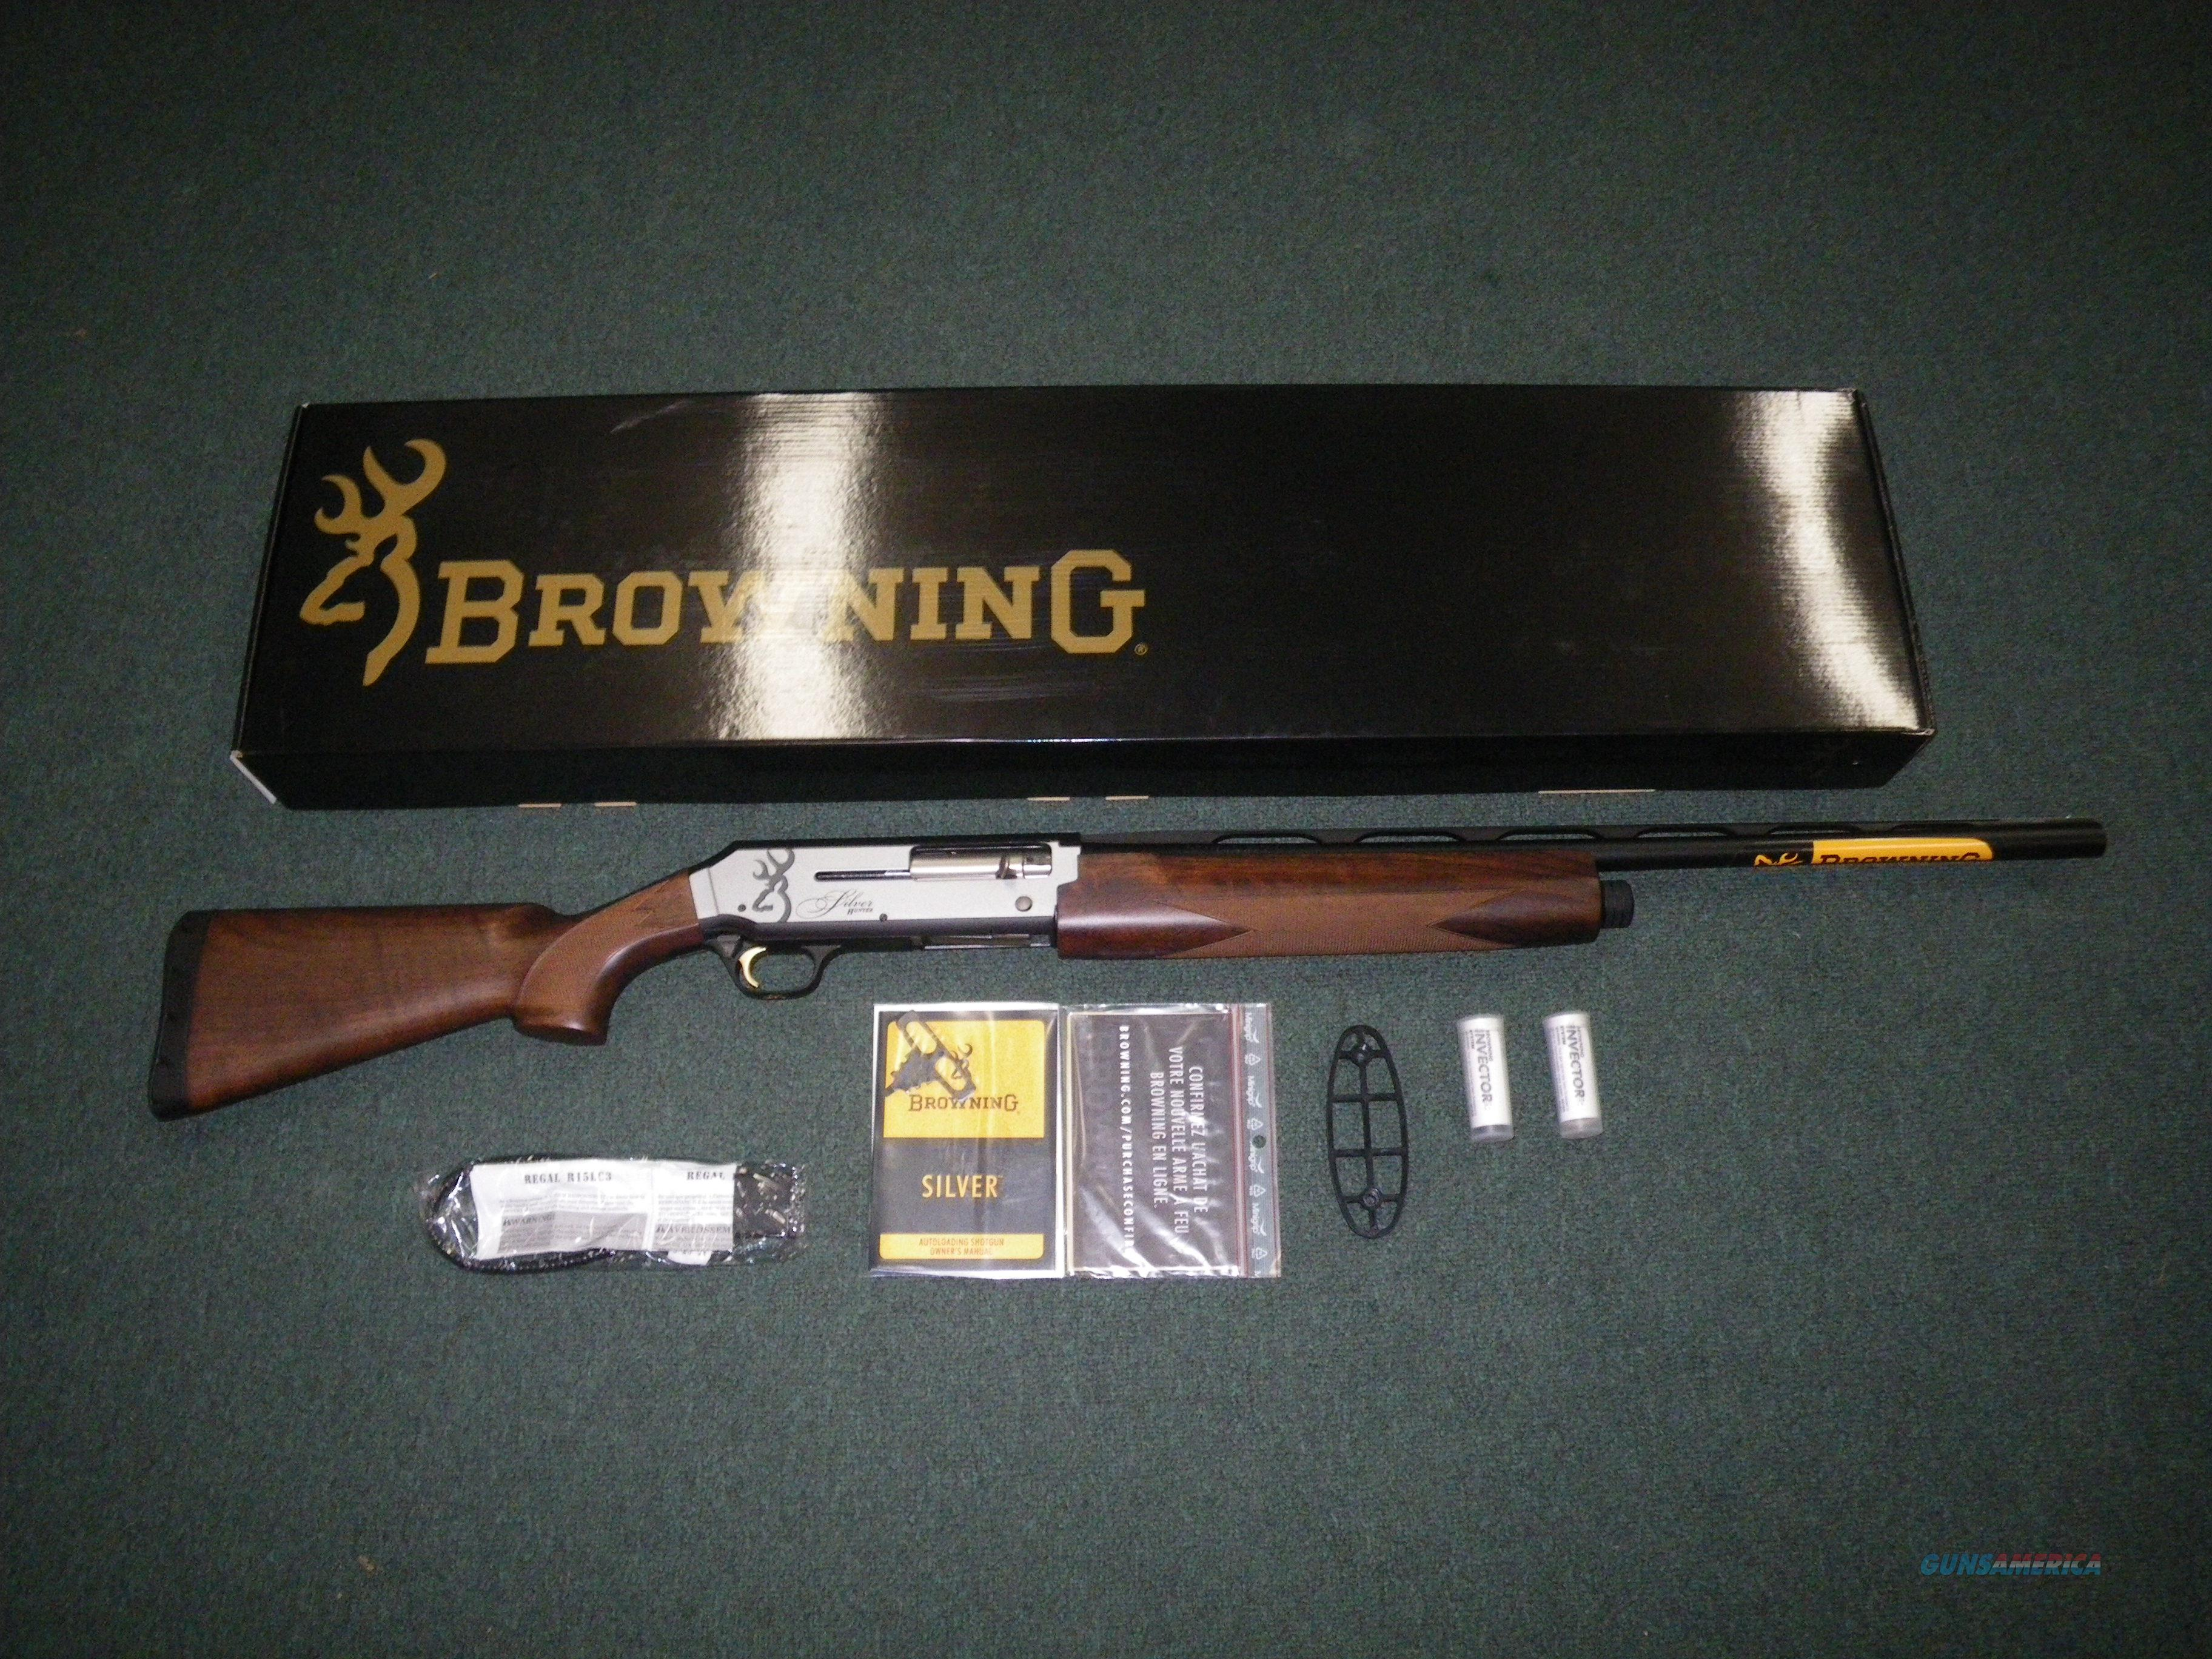 "Browning Silver Hunter Micro Midas 12ga 24"" NEW 3"" #011412306  Guns > Shotguns > Browning Shotguns > Autoloaders > Hunting"